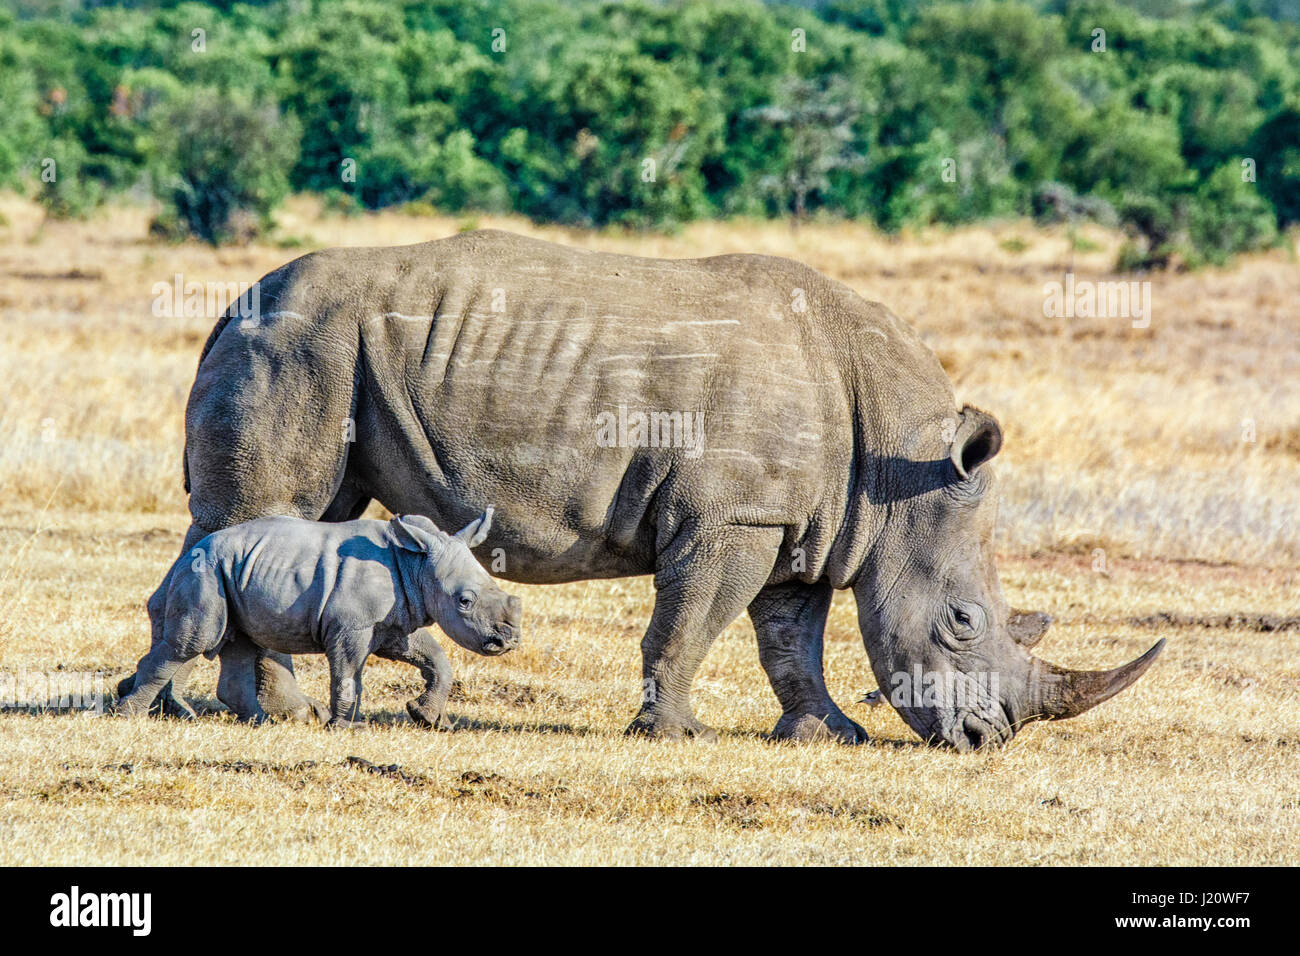 Adult White Rhinoceros, Ceratotherium simum, with small calf, Ol Pejeta Conservancy, Kenya, East Africa - Stock Image